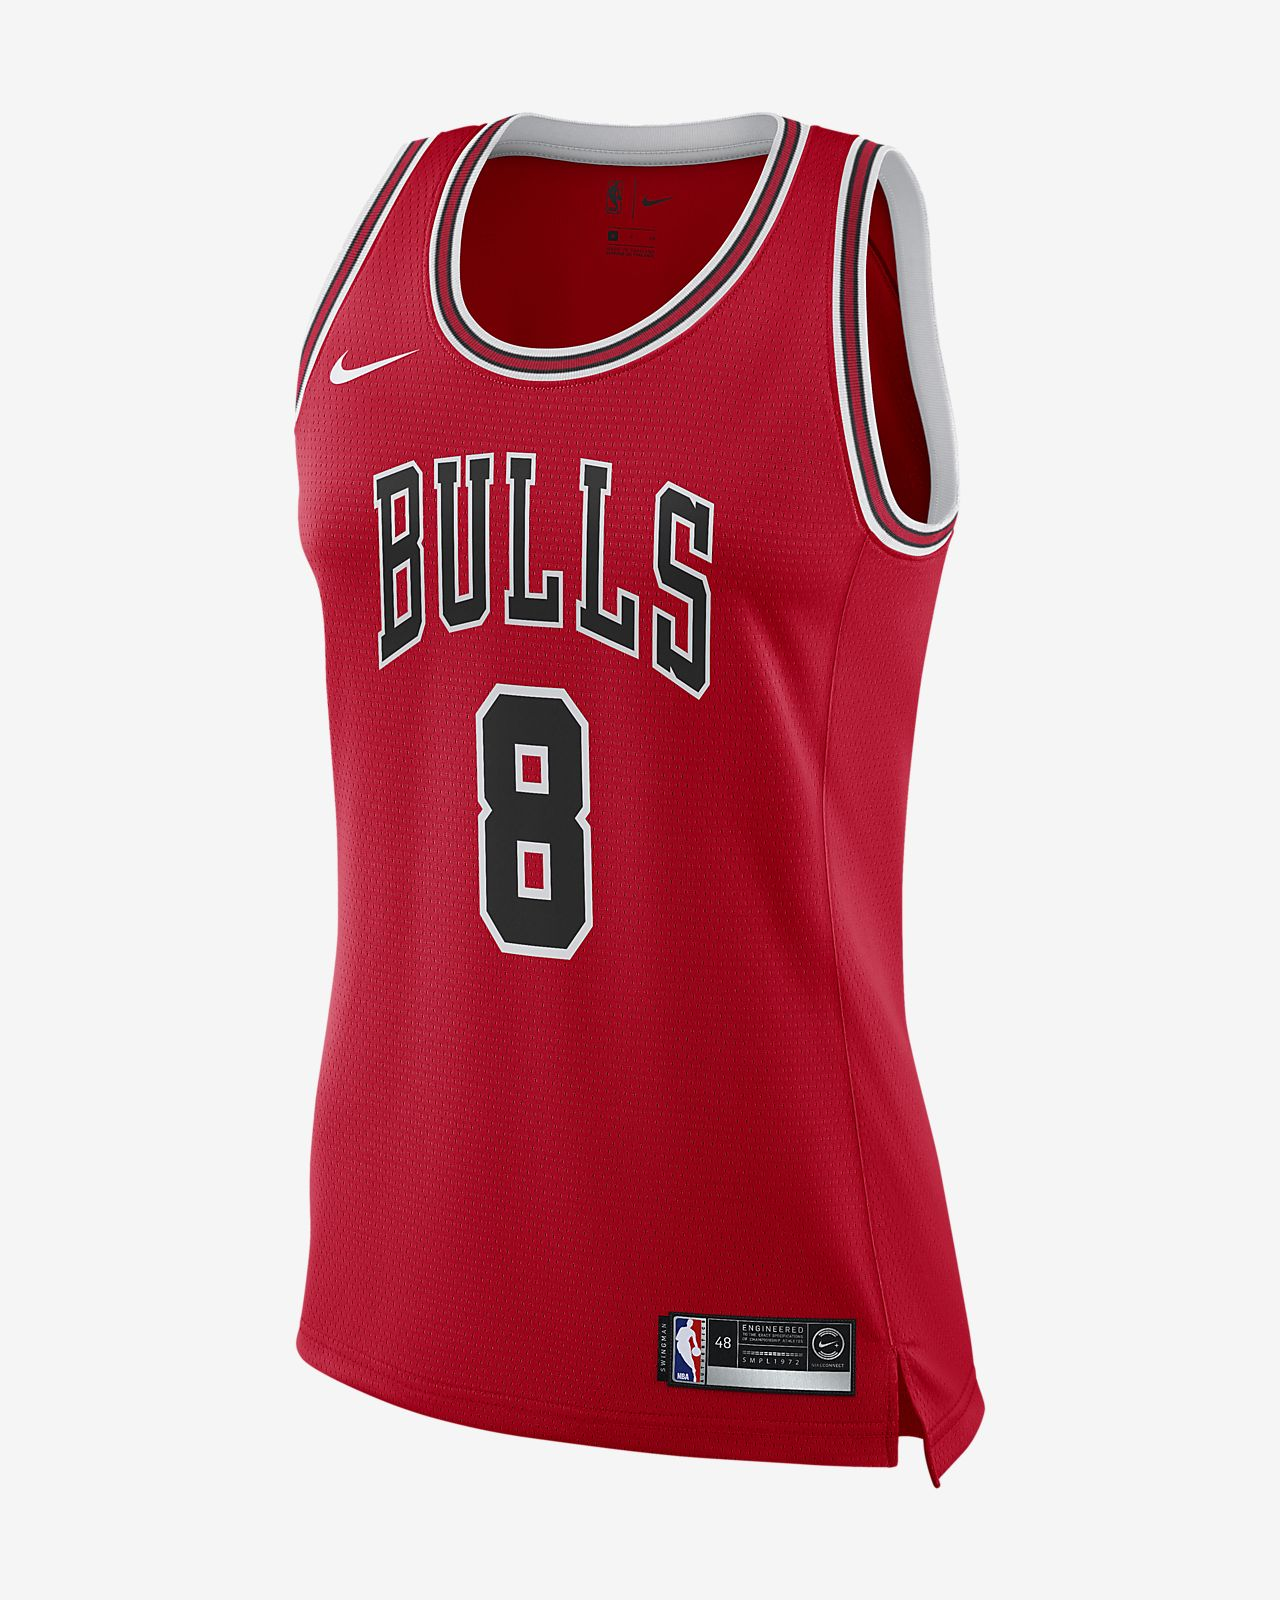 89b95d220 Women s Nike NBA Connected Jersey. Zach LaVine Icon Edition Swingman (Chicago  Bulls)